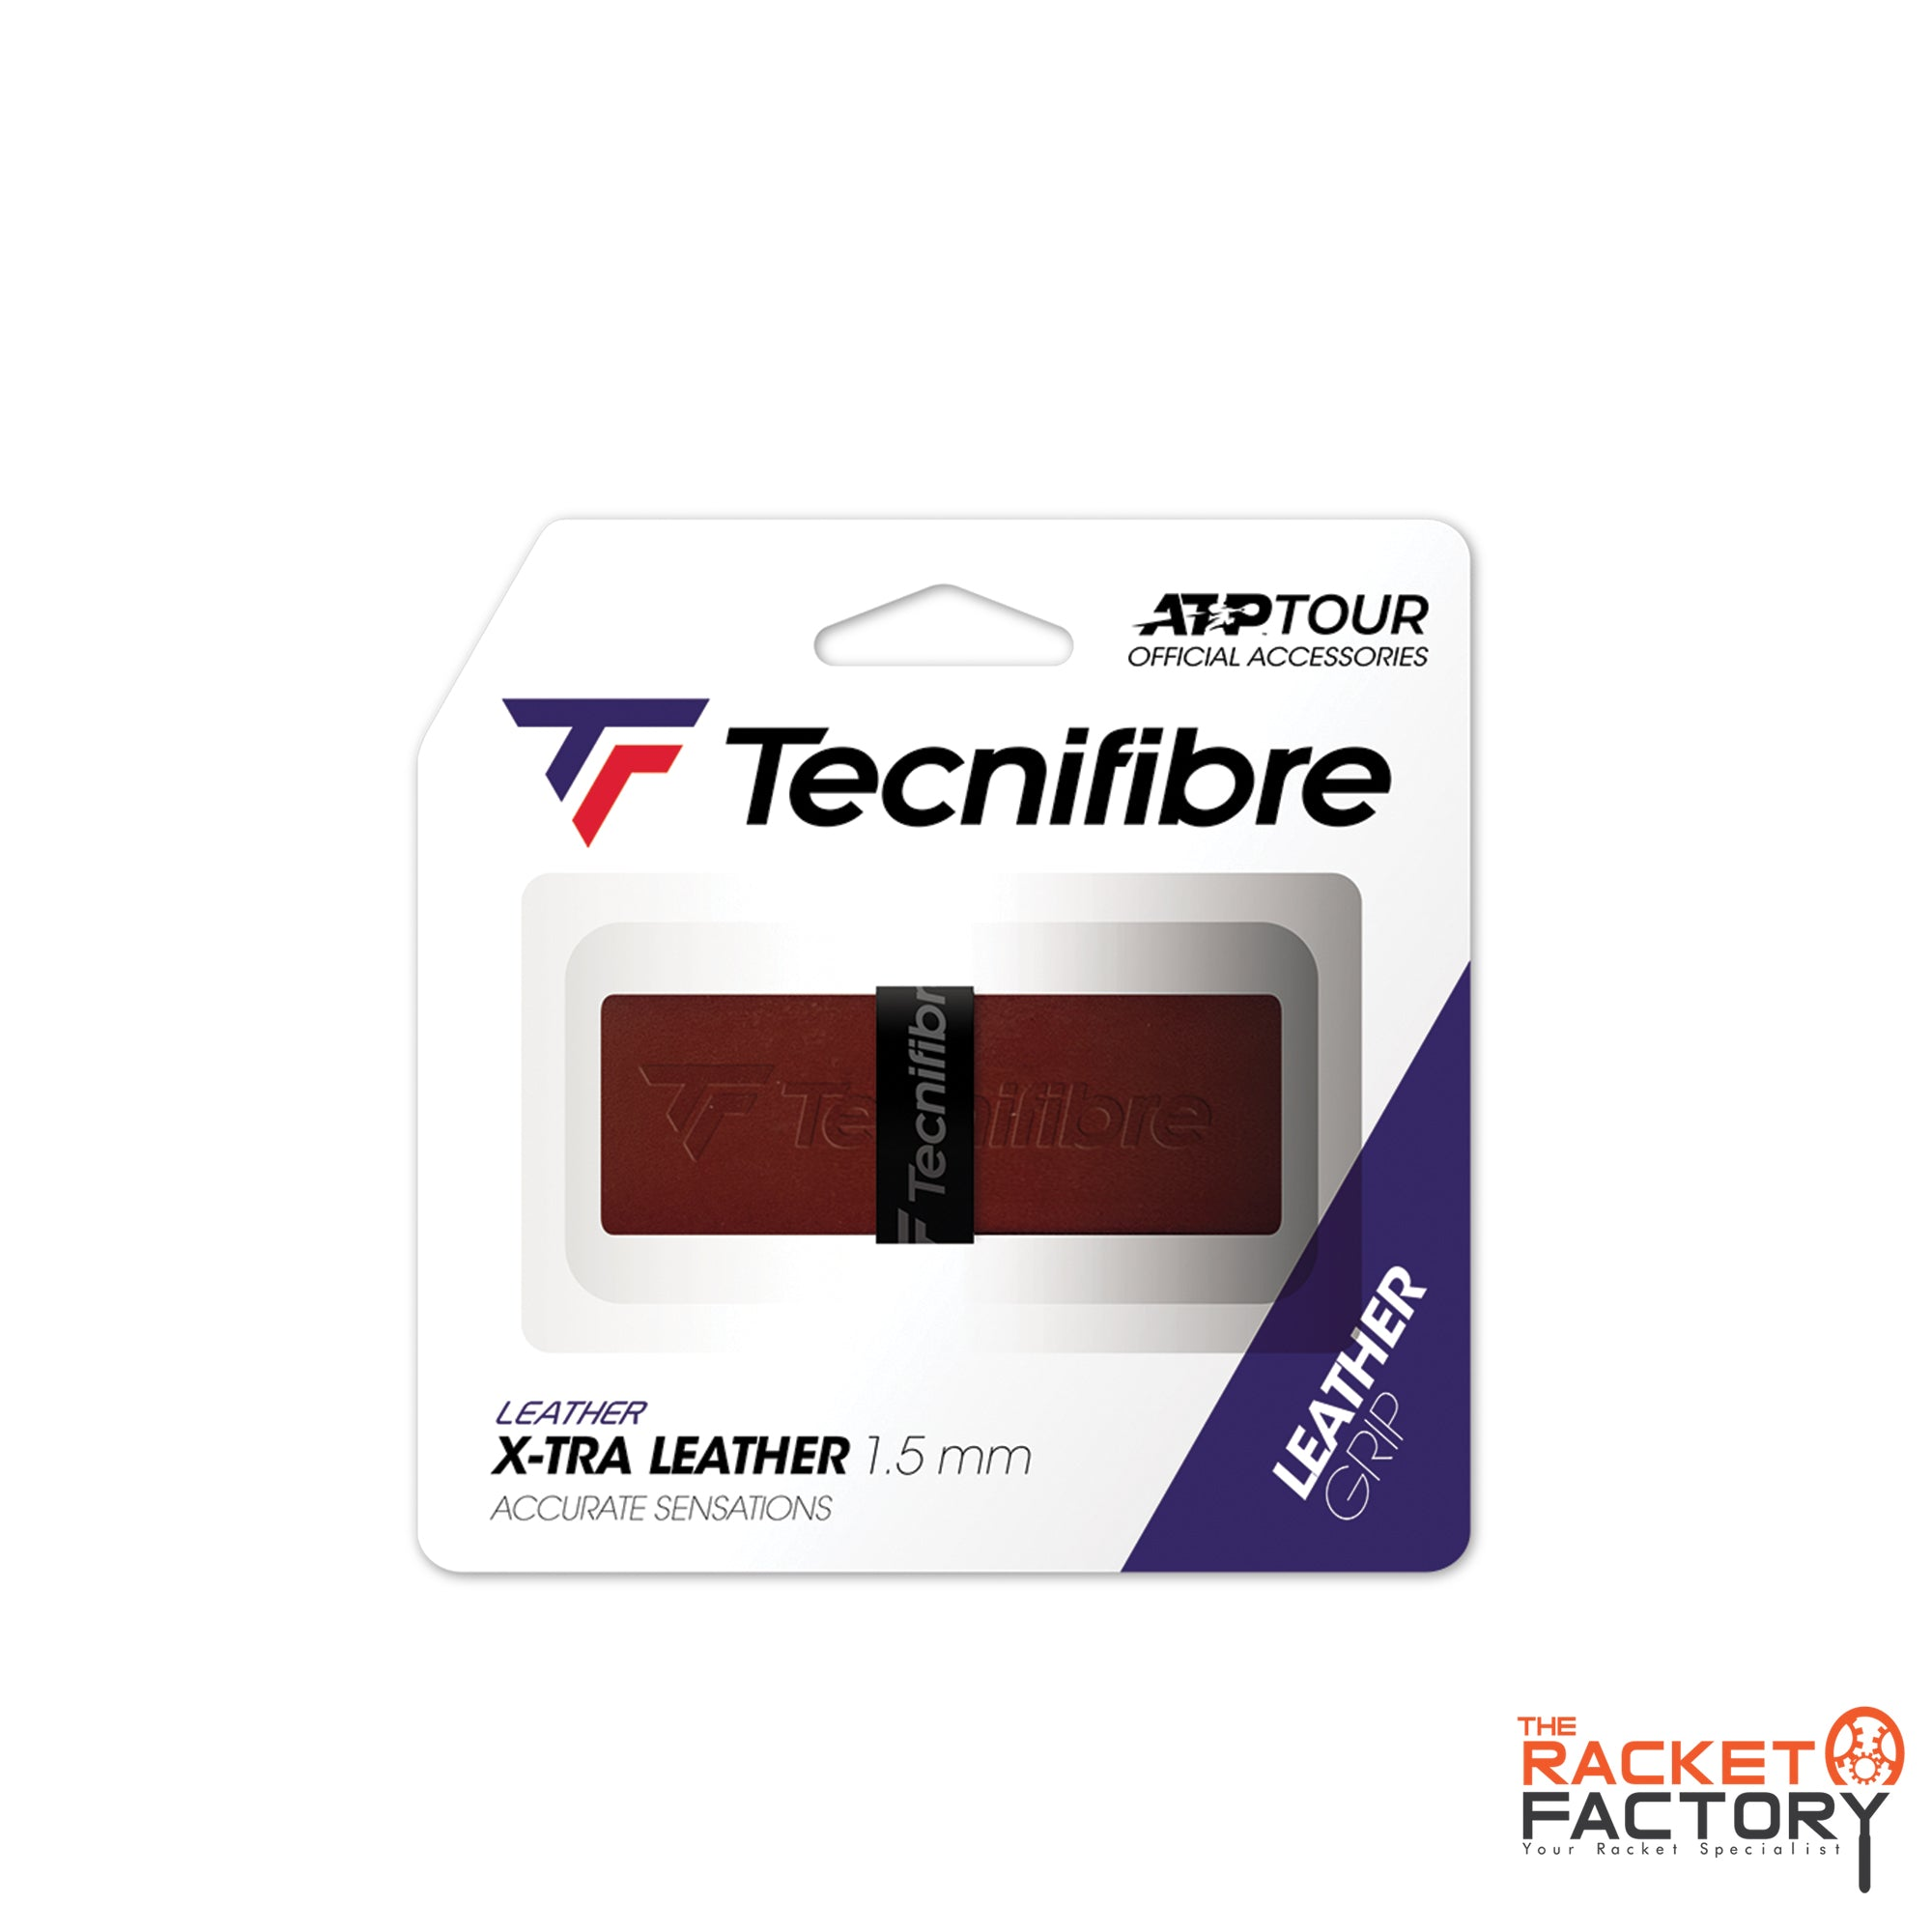 Tecnifibre ATP Leather Replacement Grip - Pack of 1